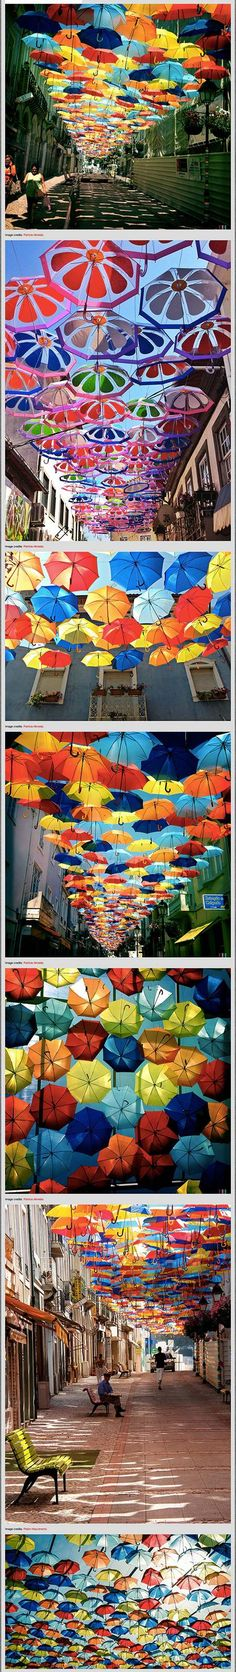 Do you remember the colorful Floating Umbrellas installation in the streets of Agueda, Portugal we posted last year? This year, Sextafeira Produções has once again hung up hundreds of colorful umbrellas, transforming your shopping experience or the afternoon walk into a Mary-Poppins type of adventure!